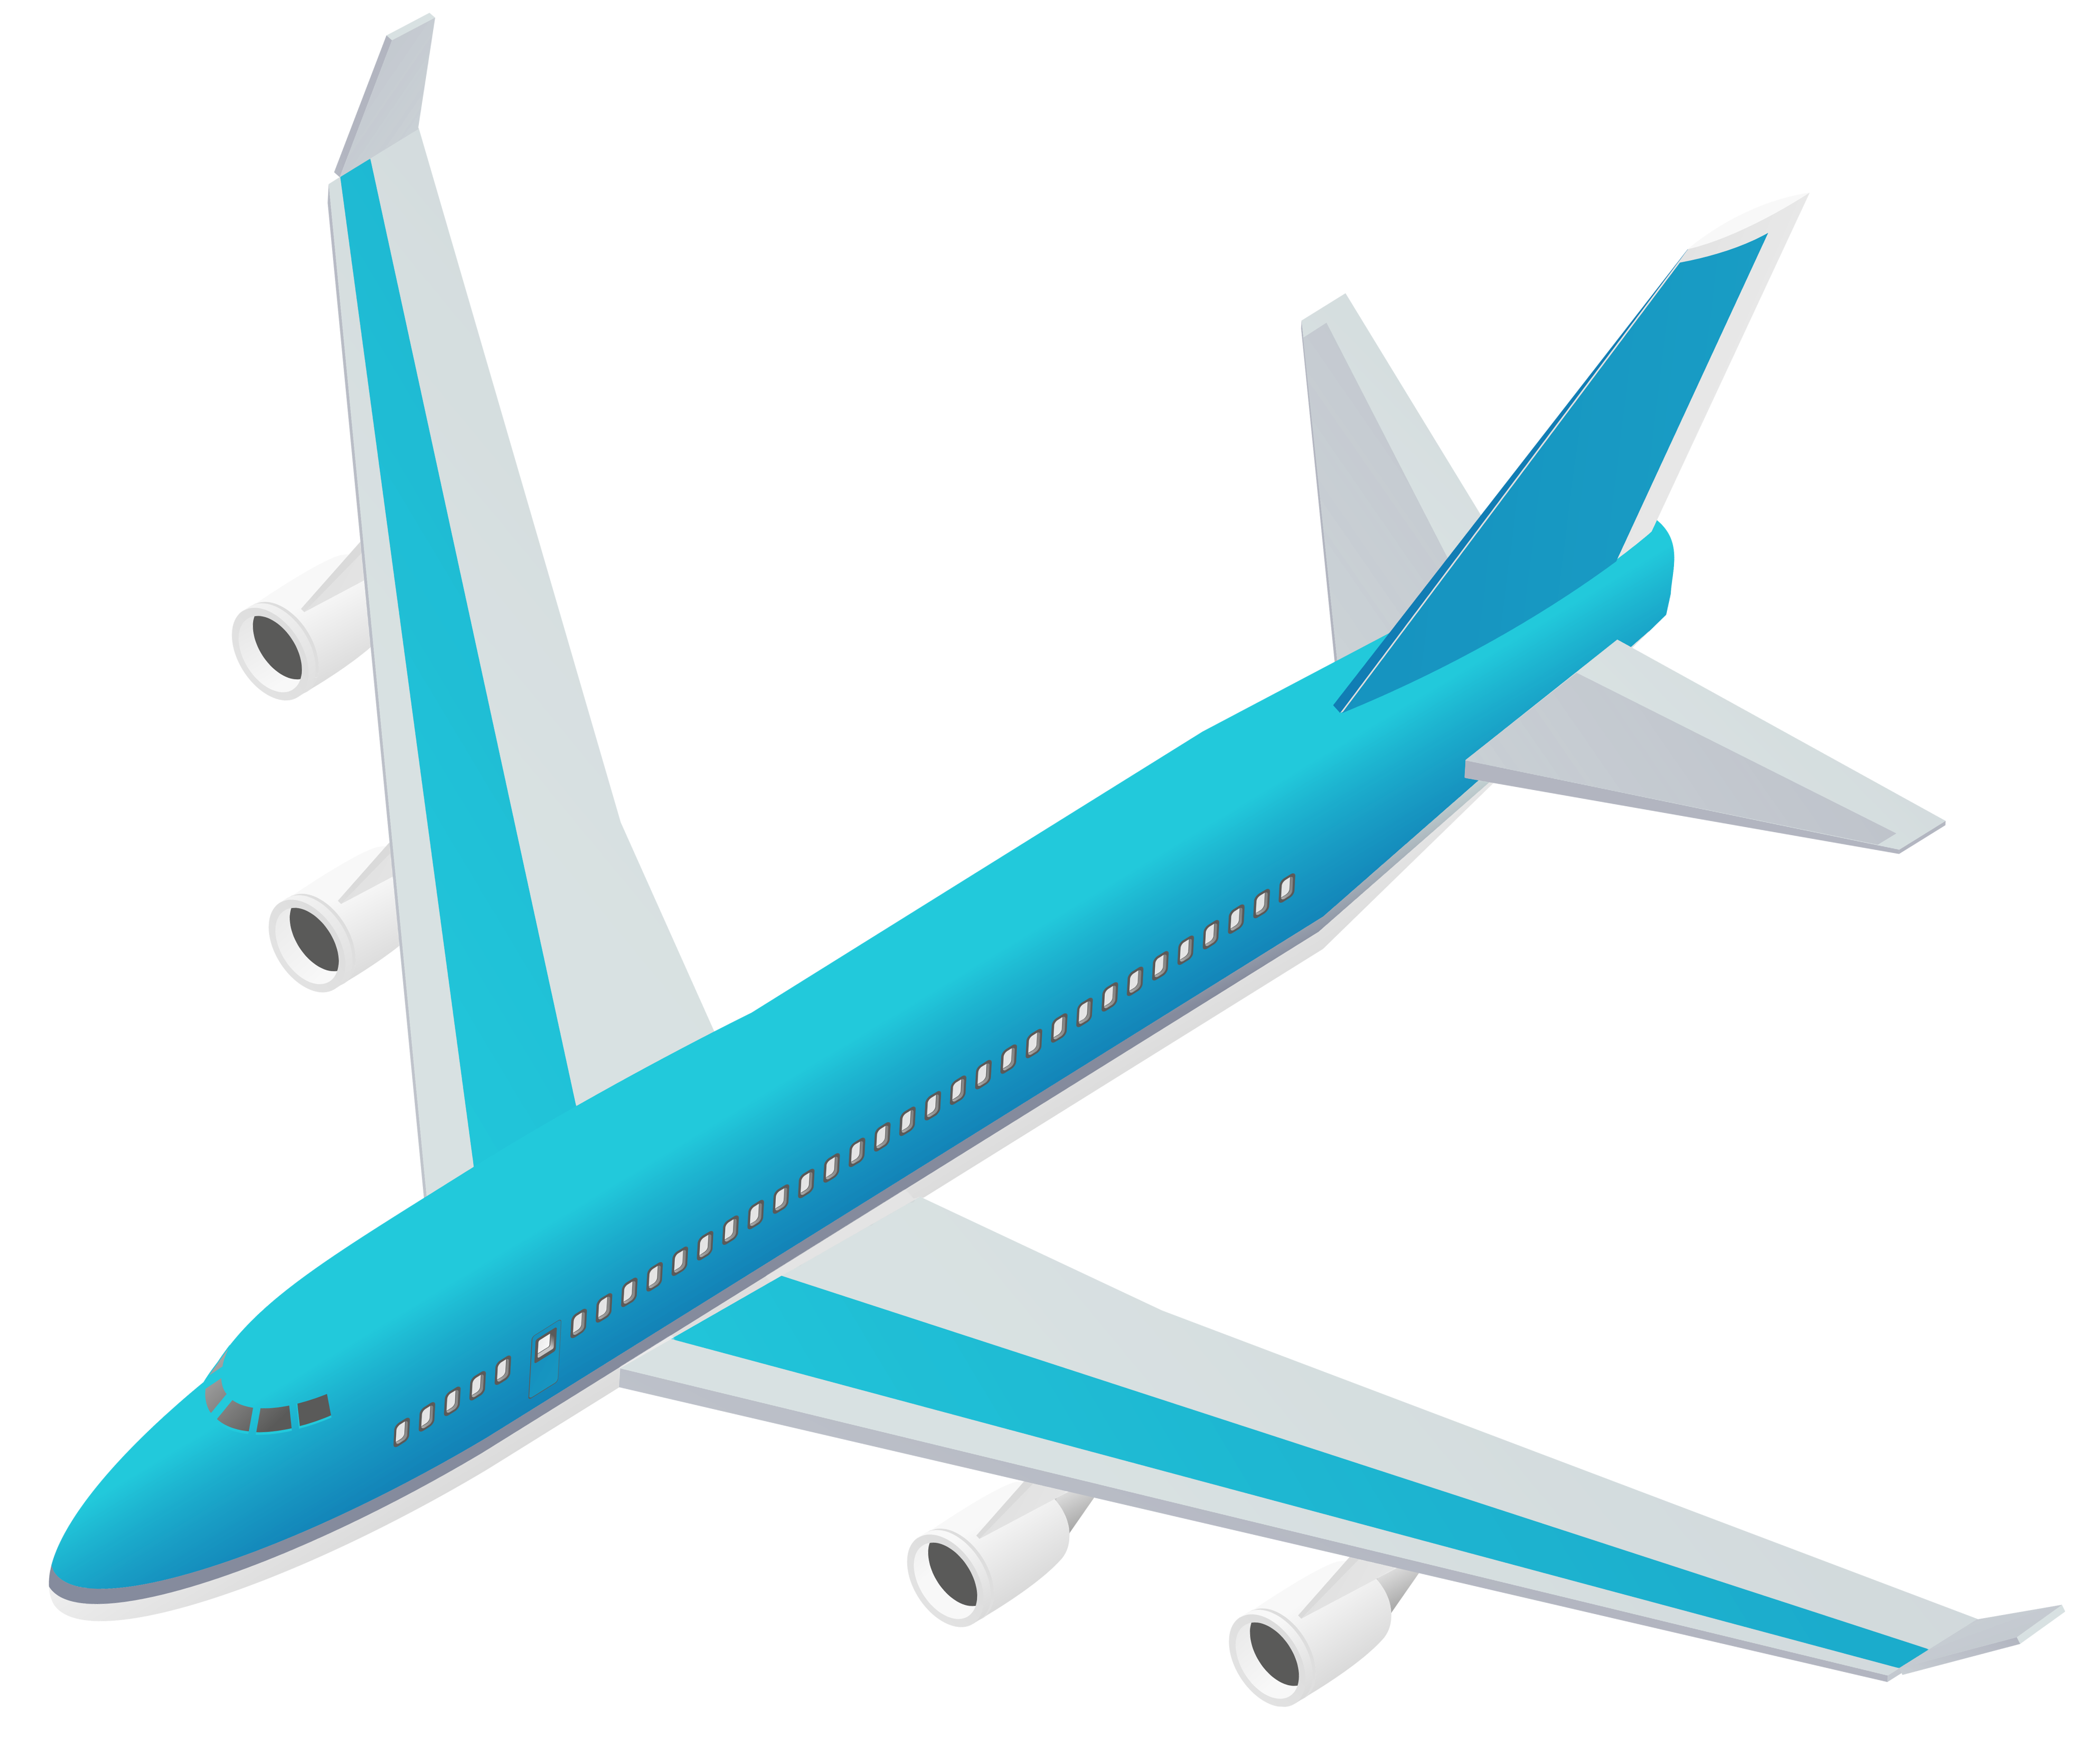 airplane clipart transparent background - photo #6